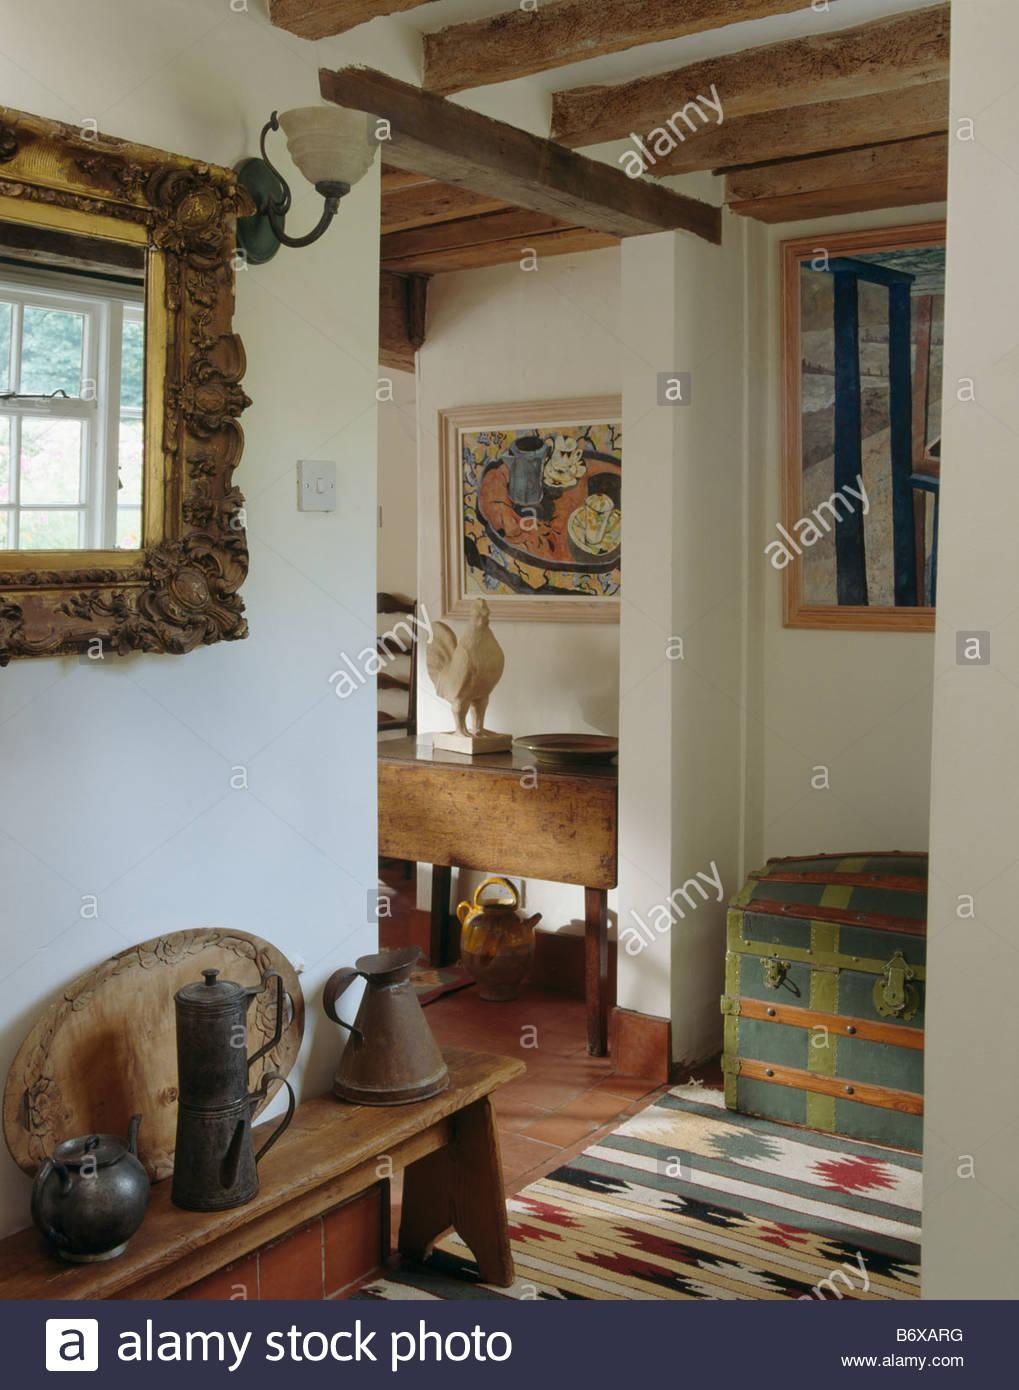 Ornate Mirror Above Wooden Bench With Old Pewter Jugs In Small Intended For Pewter Ornate Mirror (Image 8 of 20)